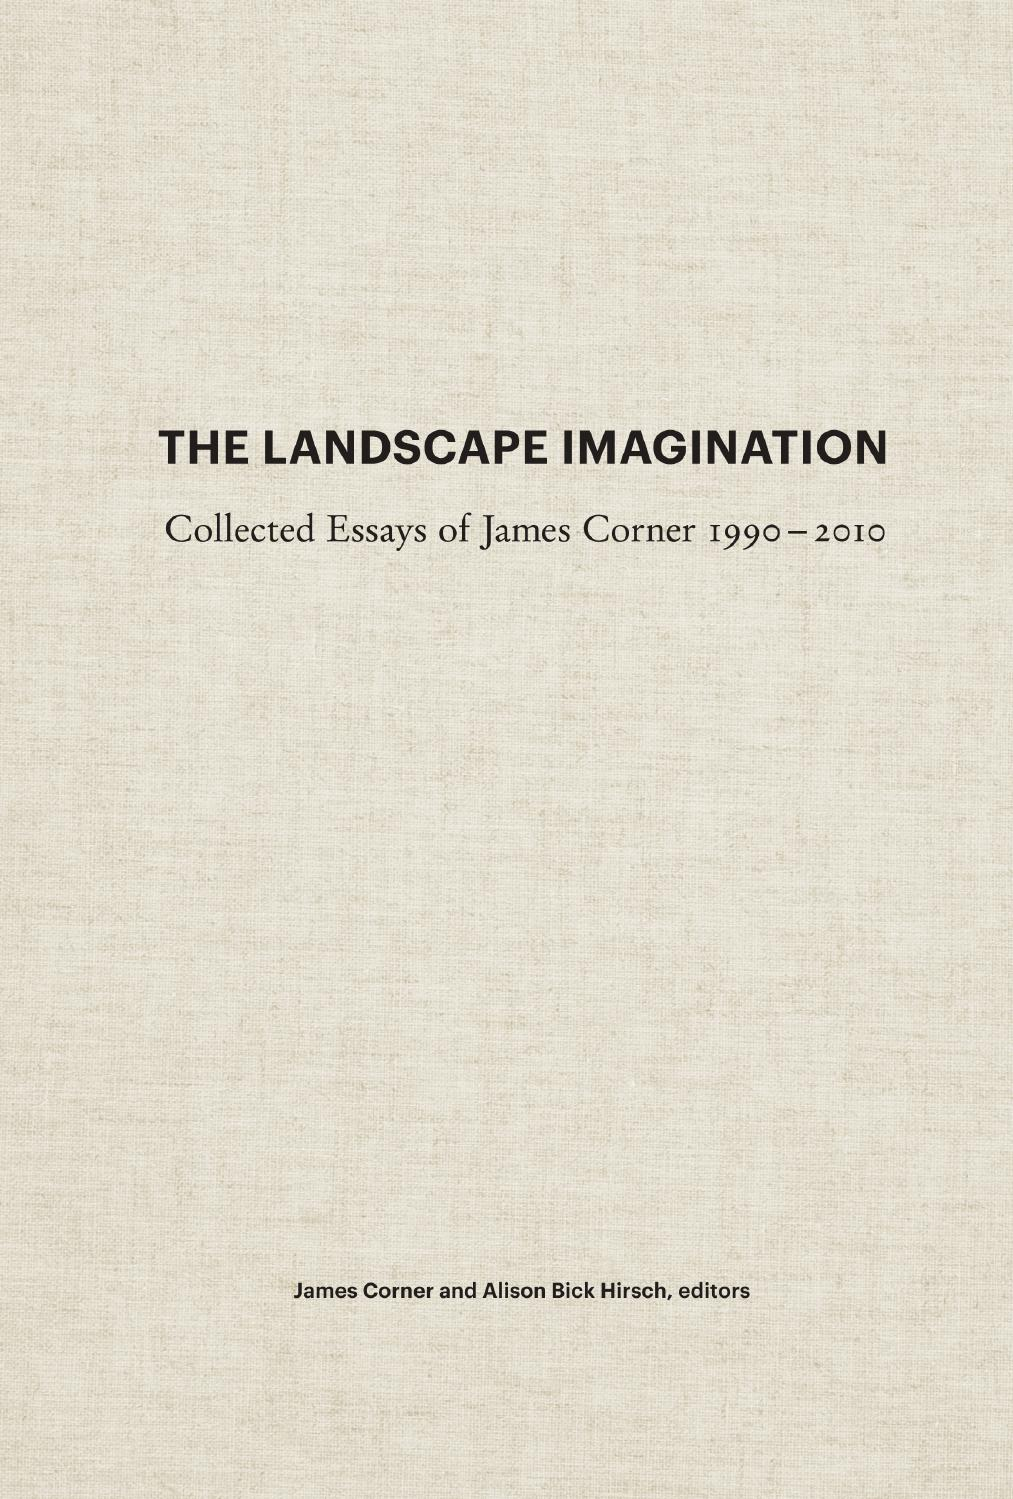 james corner on reading and imagining the landscape the nature landscape imagination